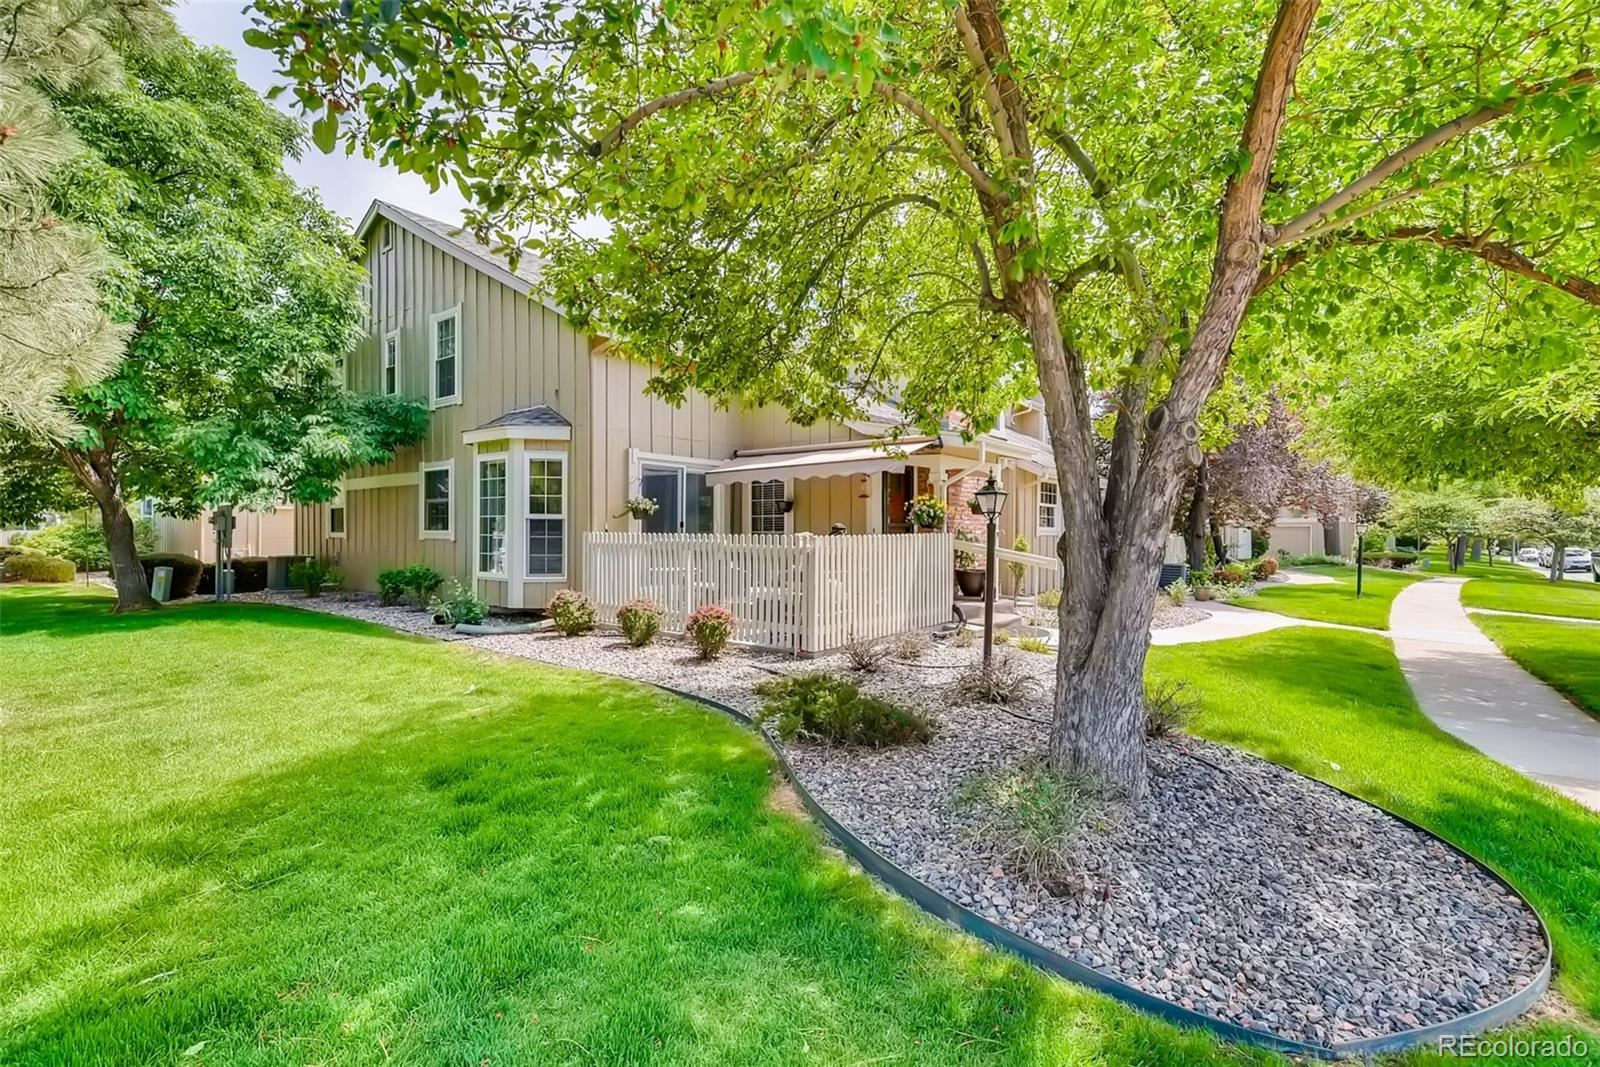 9999 Grove Way #D, Westminster, CO 80031 - #: 3630332